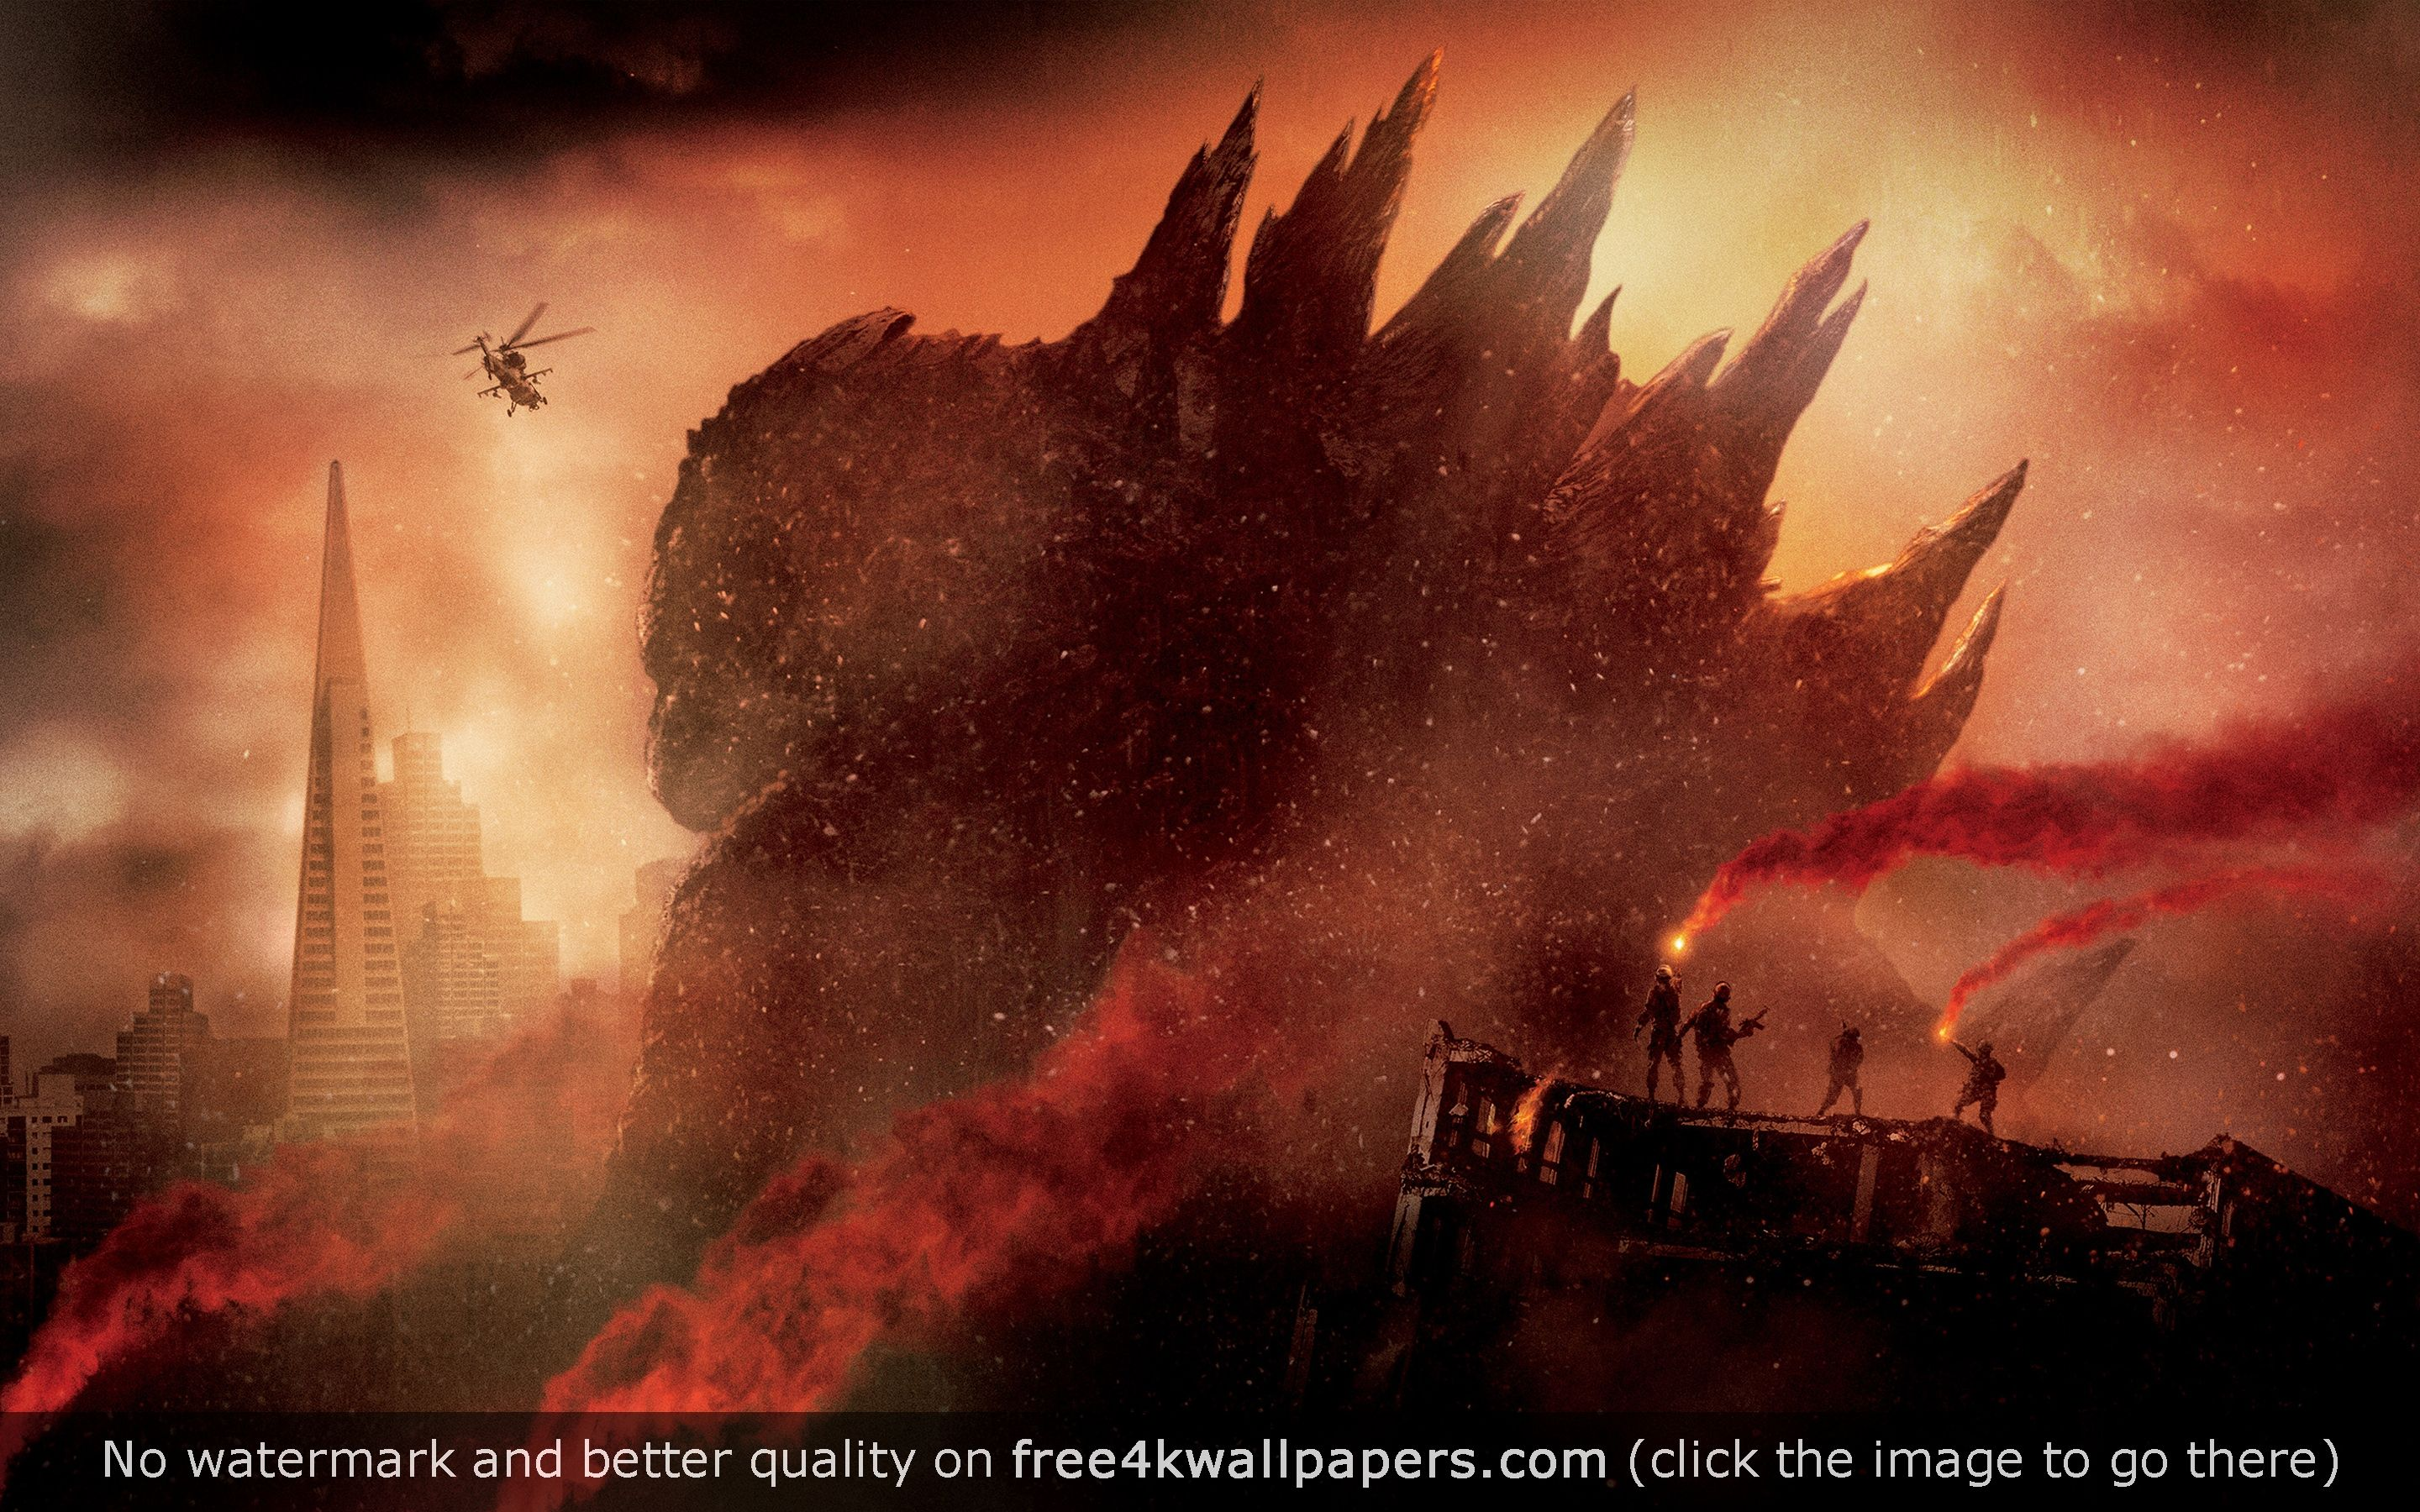 Godzilla HD wallpaper Download Godzilla HD wallpaper for your